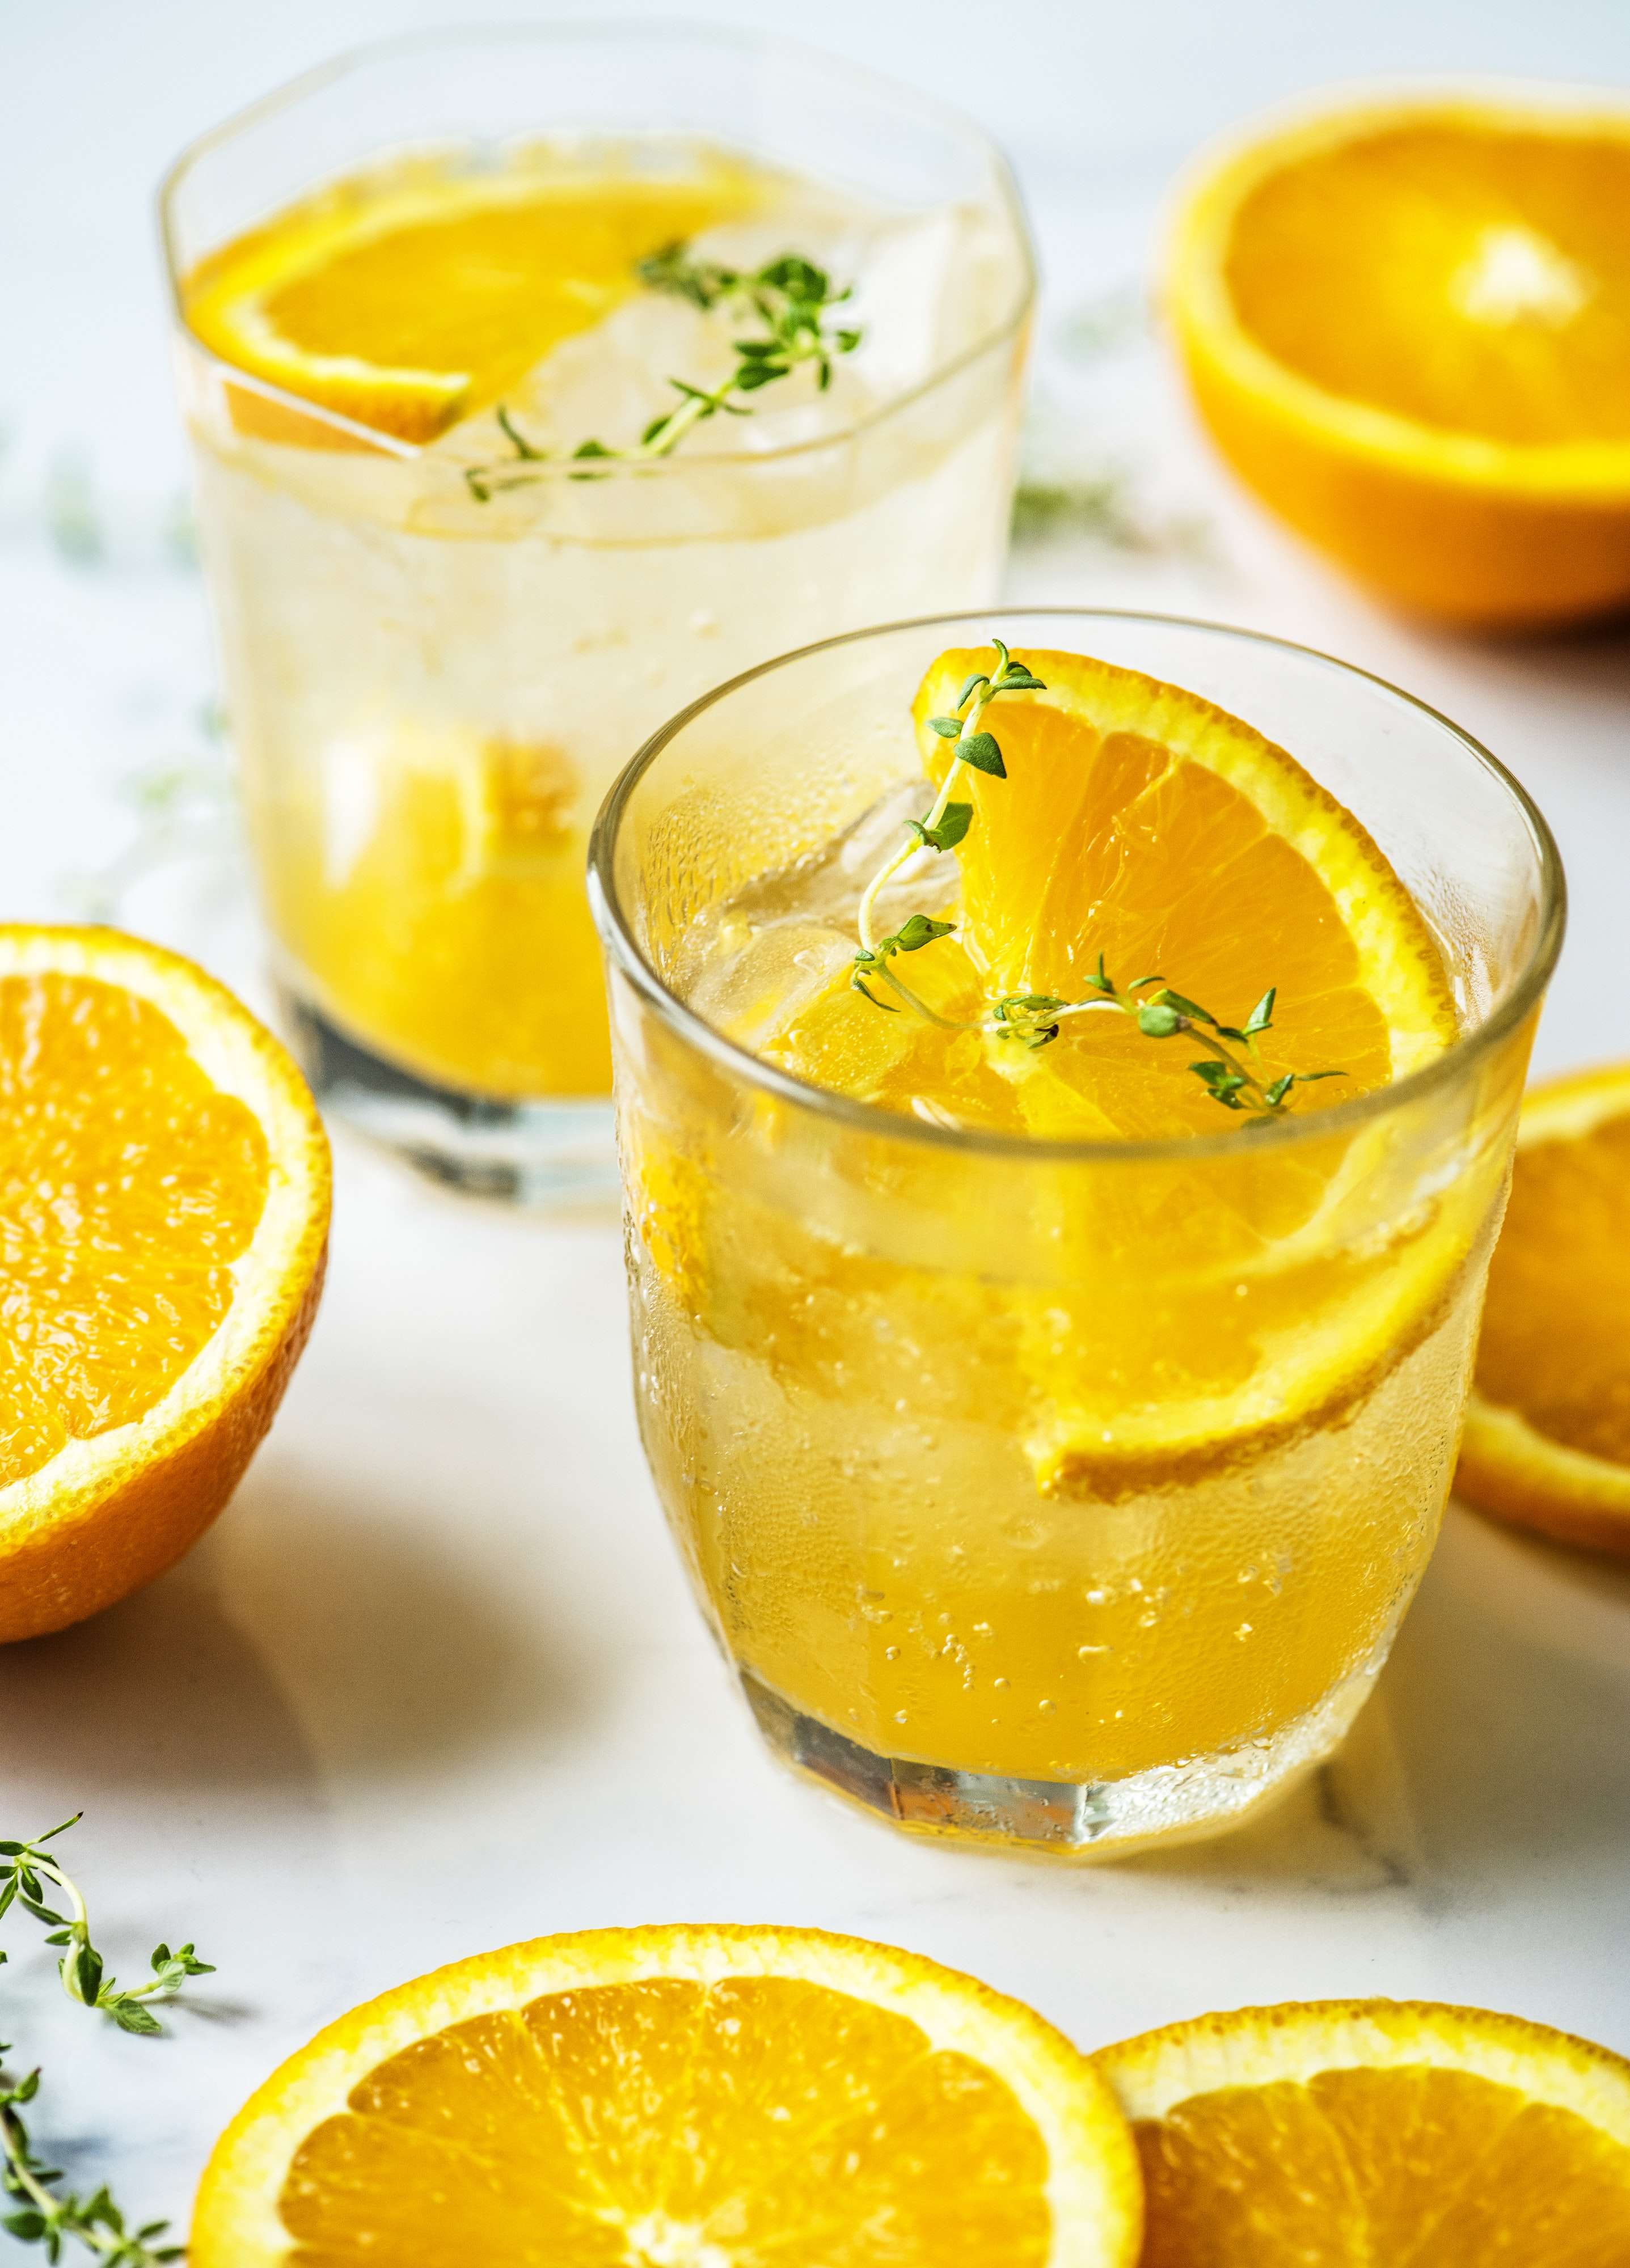 glass filled with orange